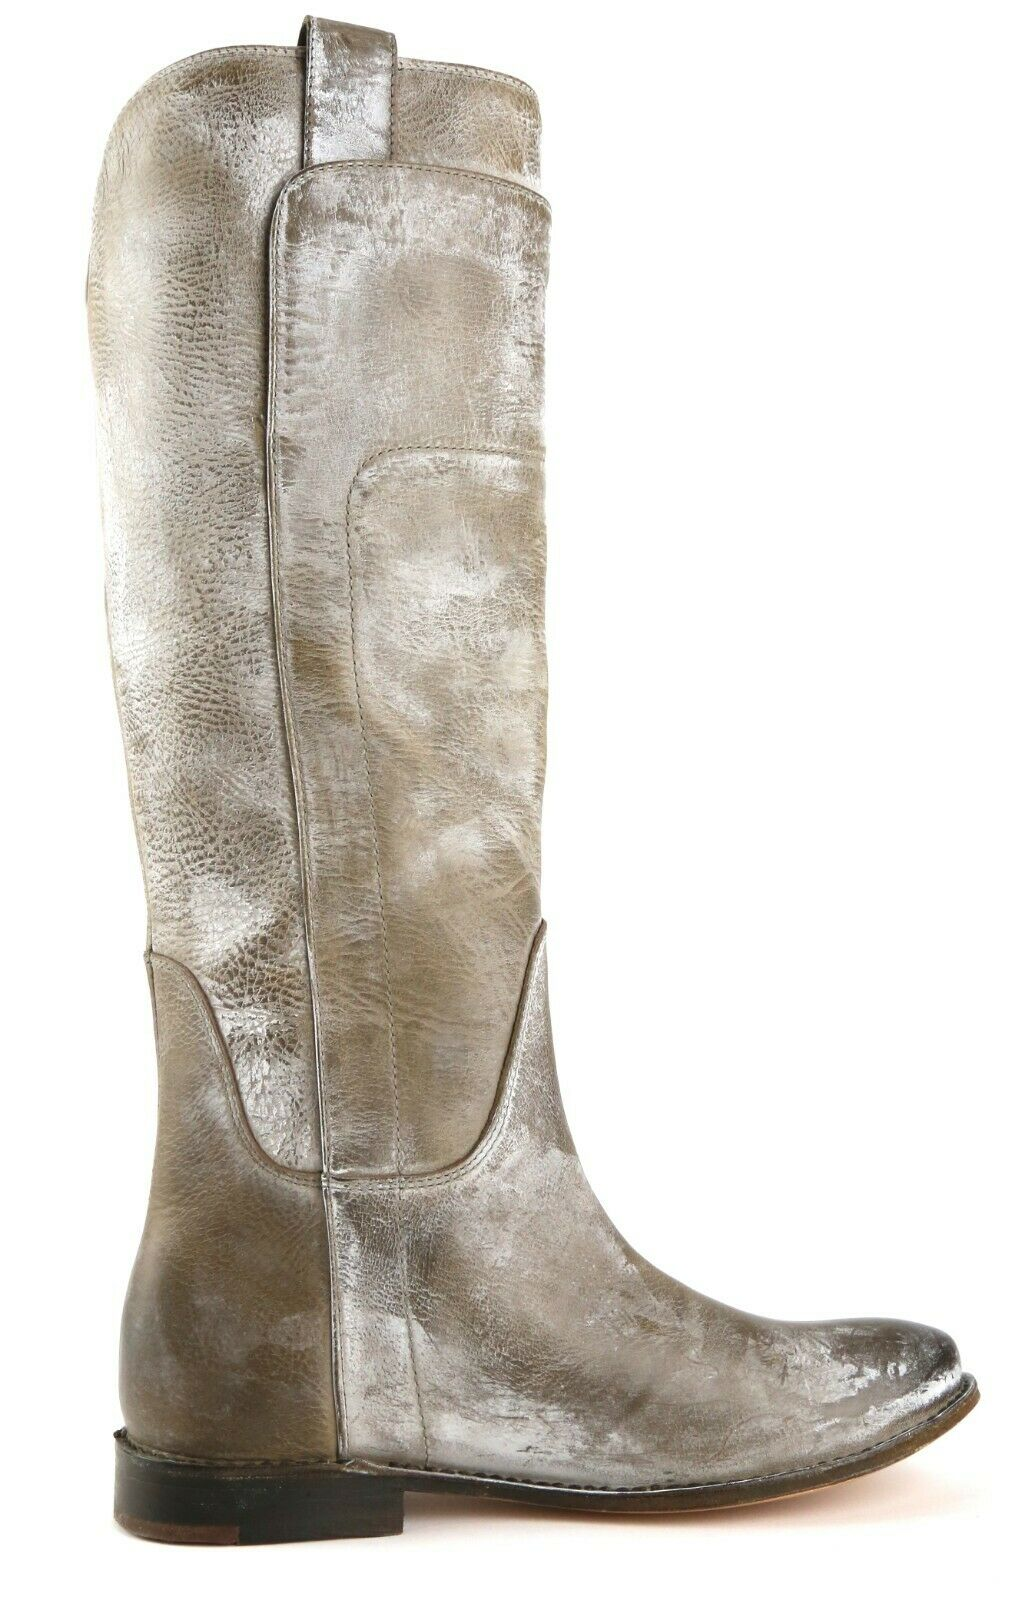 Frye Womens Grey Paige Paige Paige Tall Riding Boots Sz 5.5 B 1295 942024